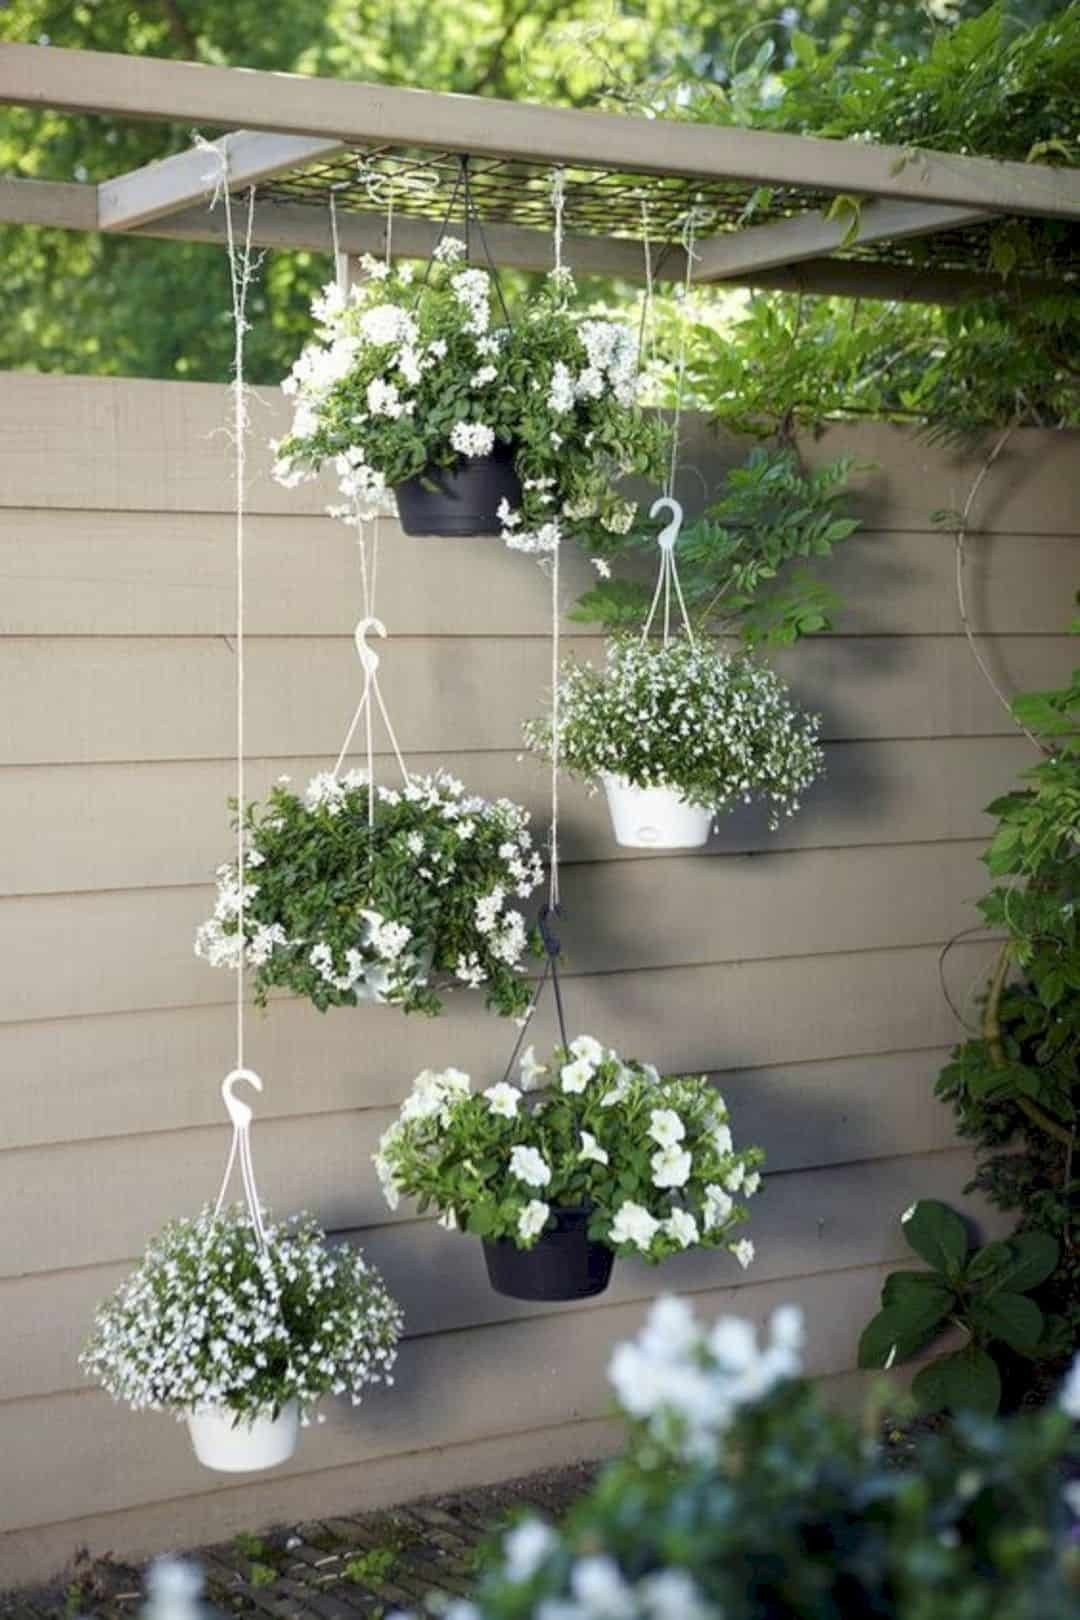 16 beautiful garden decorating ideas | futurist architecture pertaining to Decorating The Garden